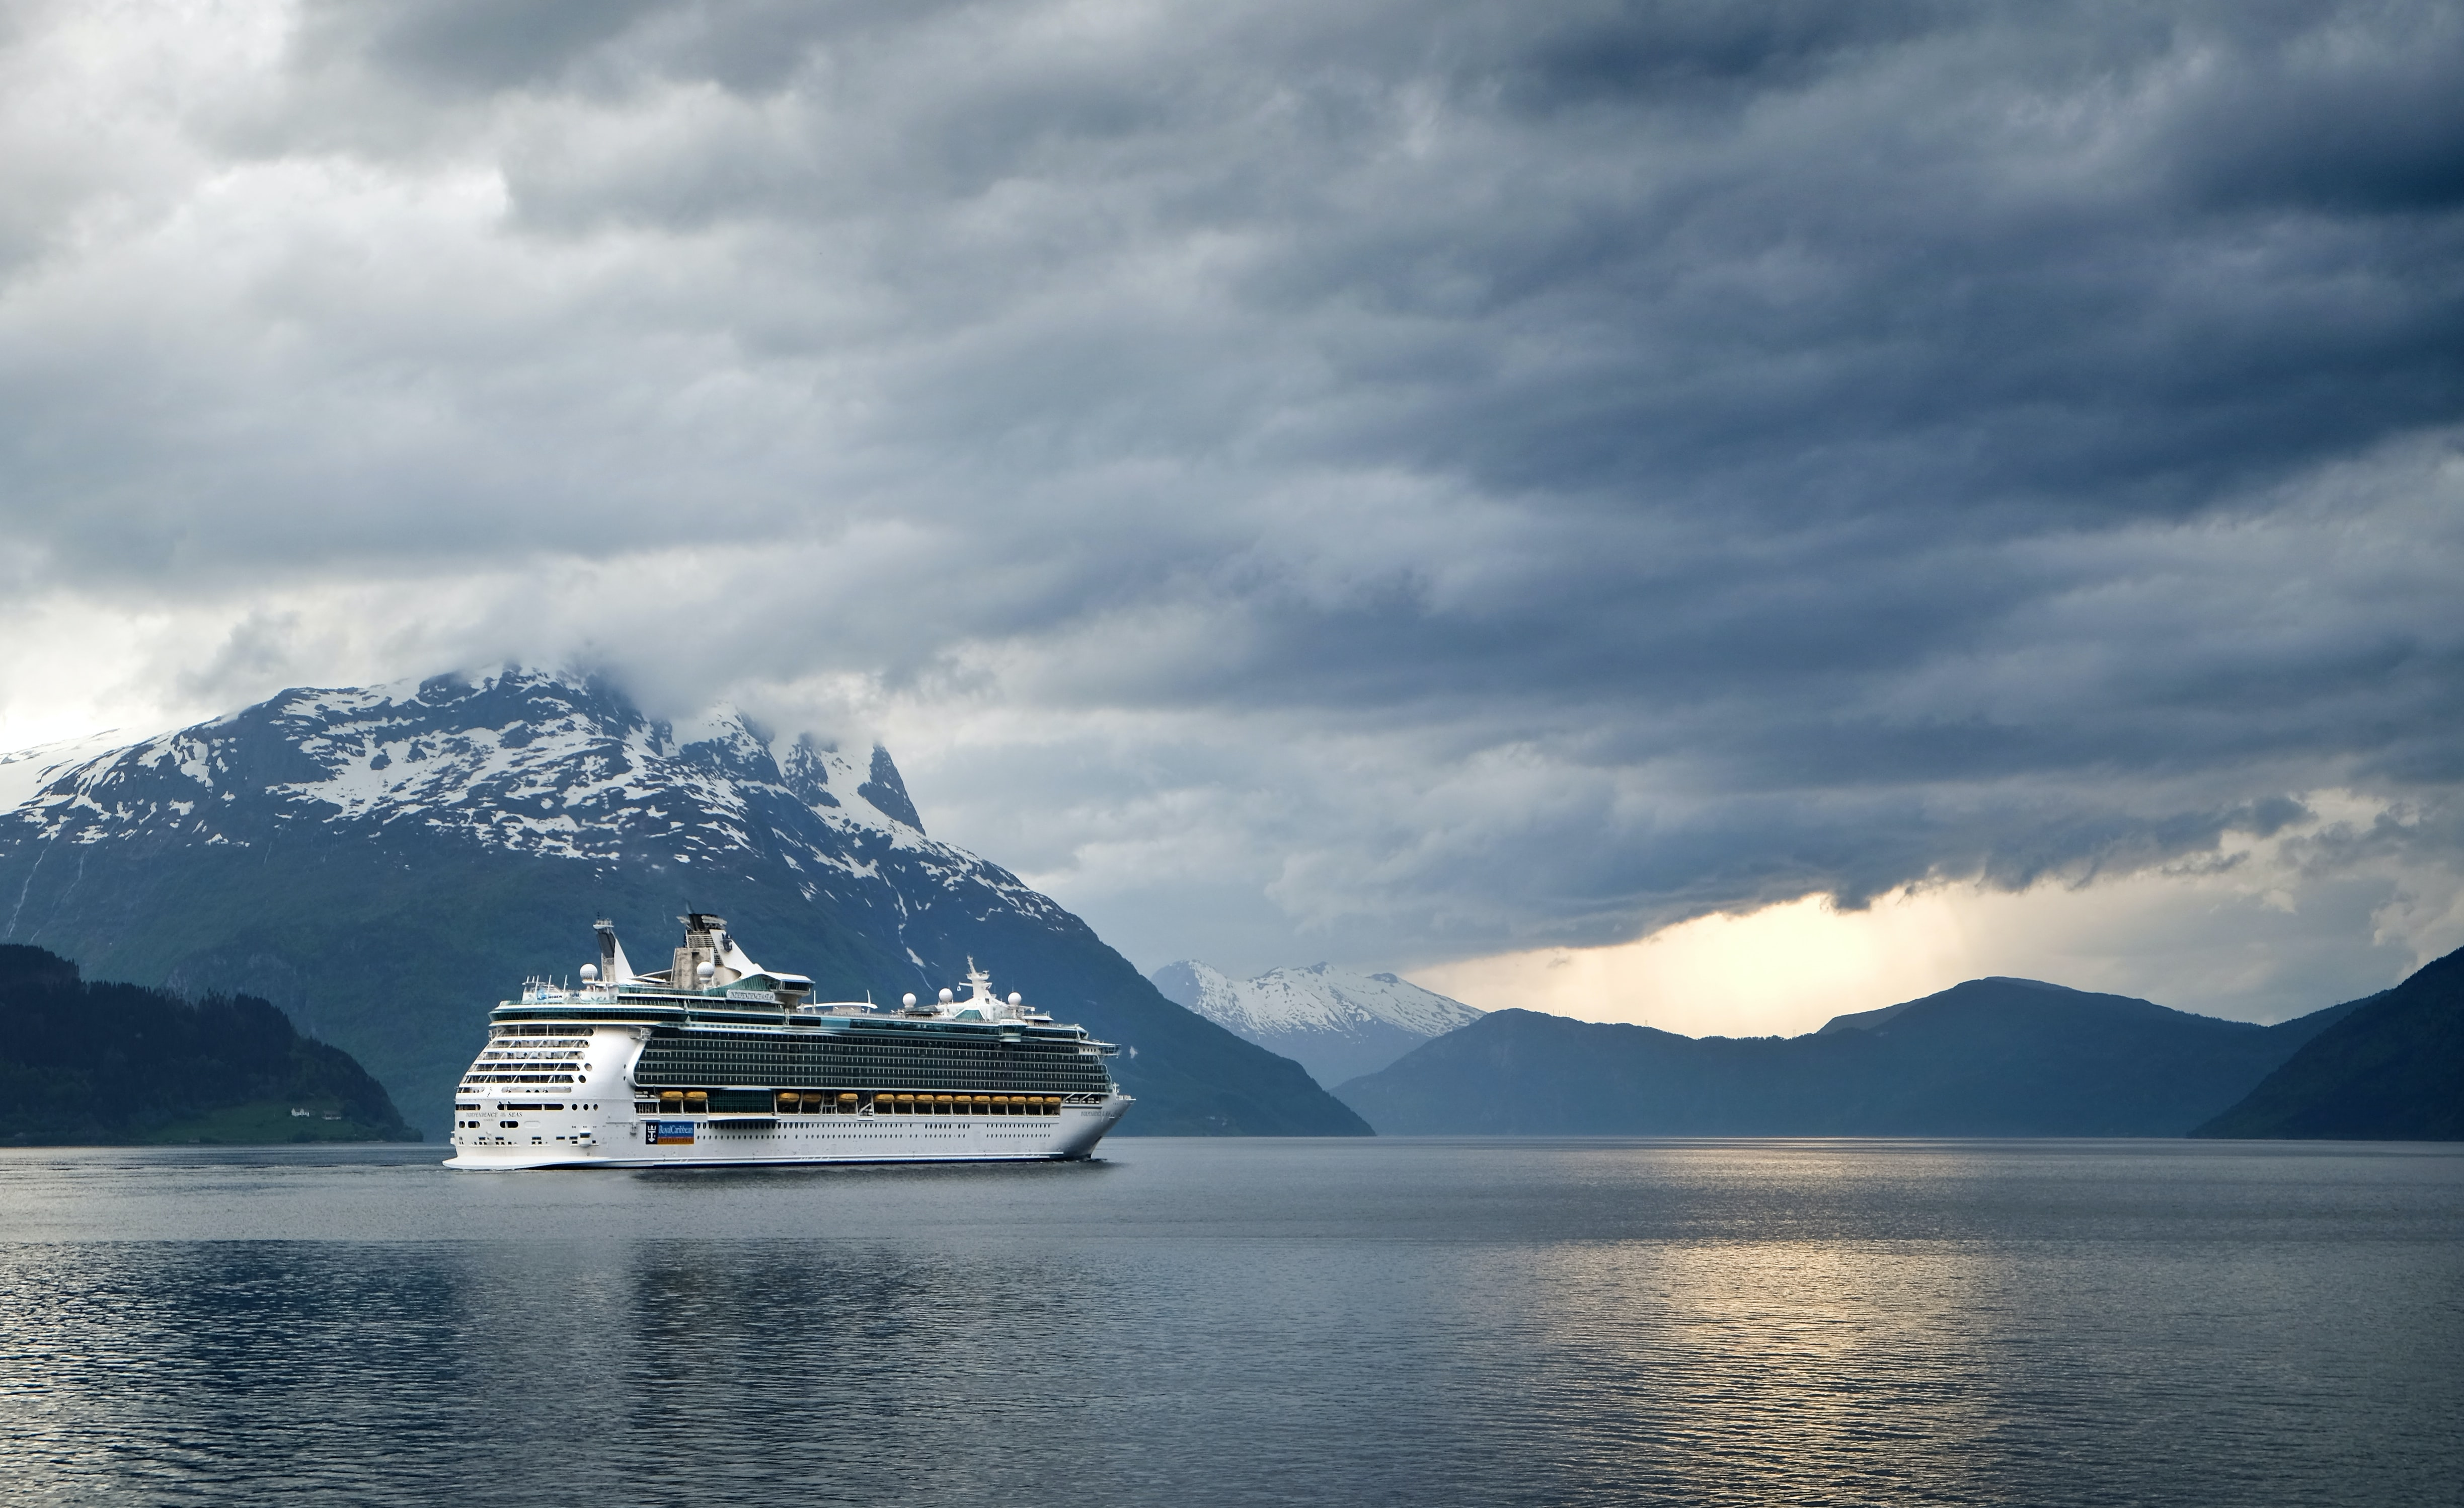 white and gray cruise ship on body of water